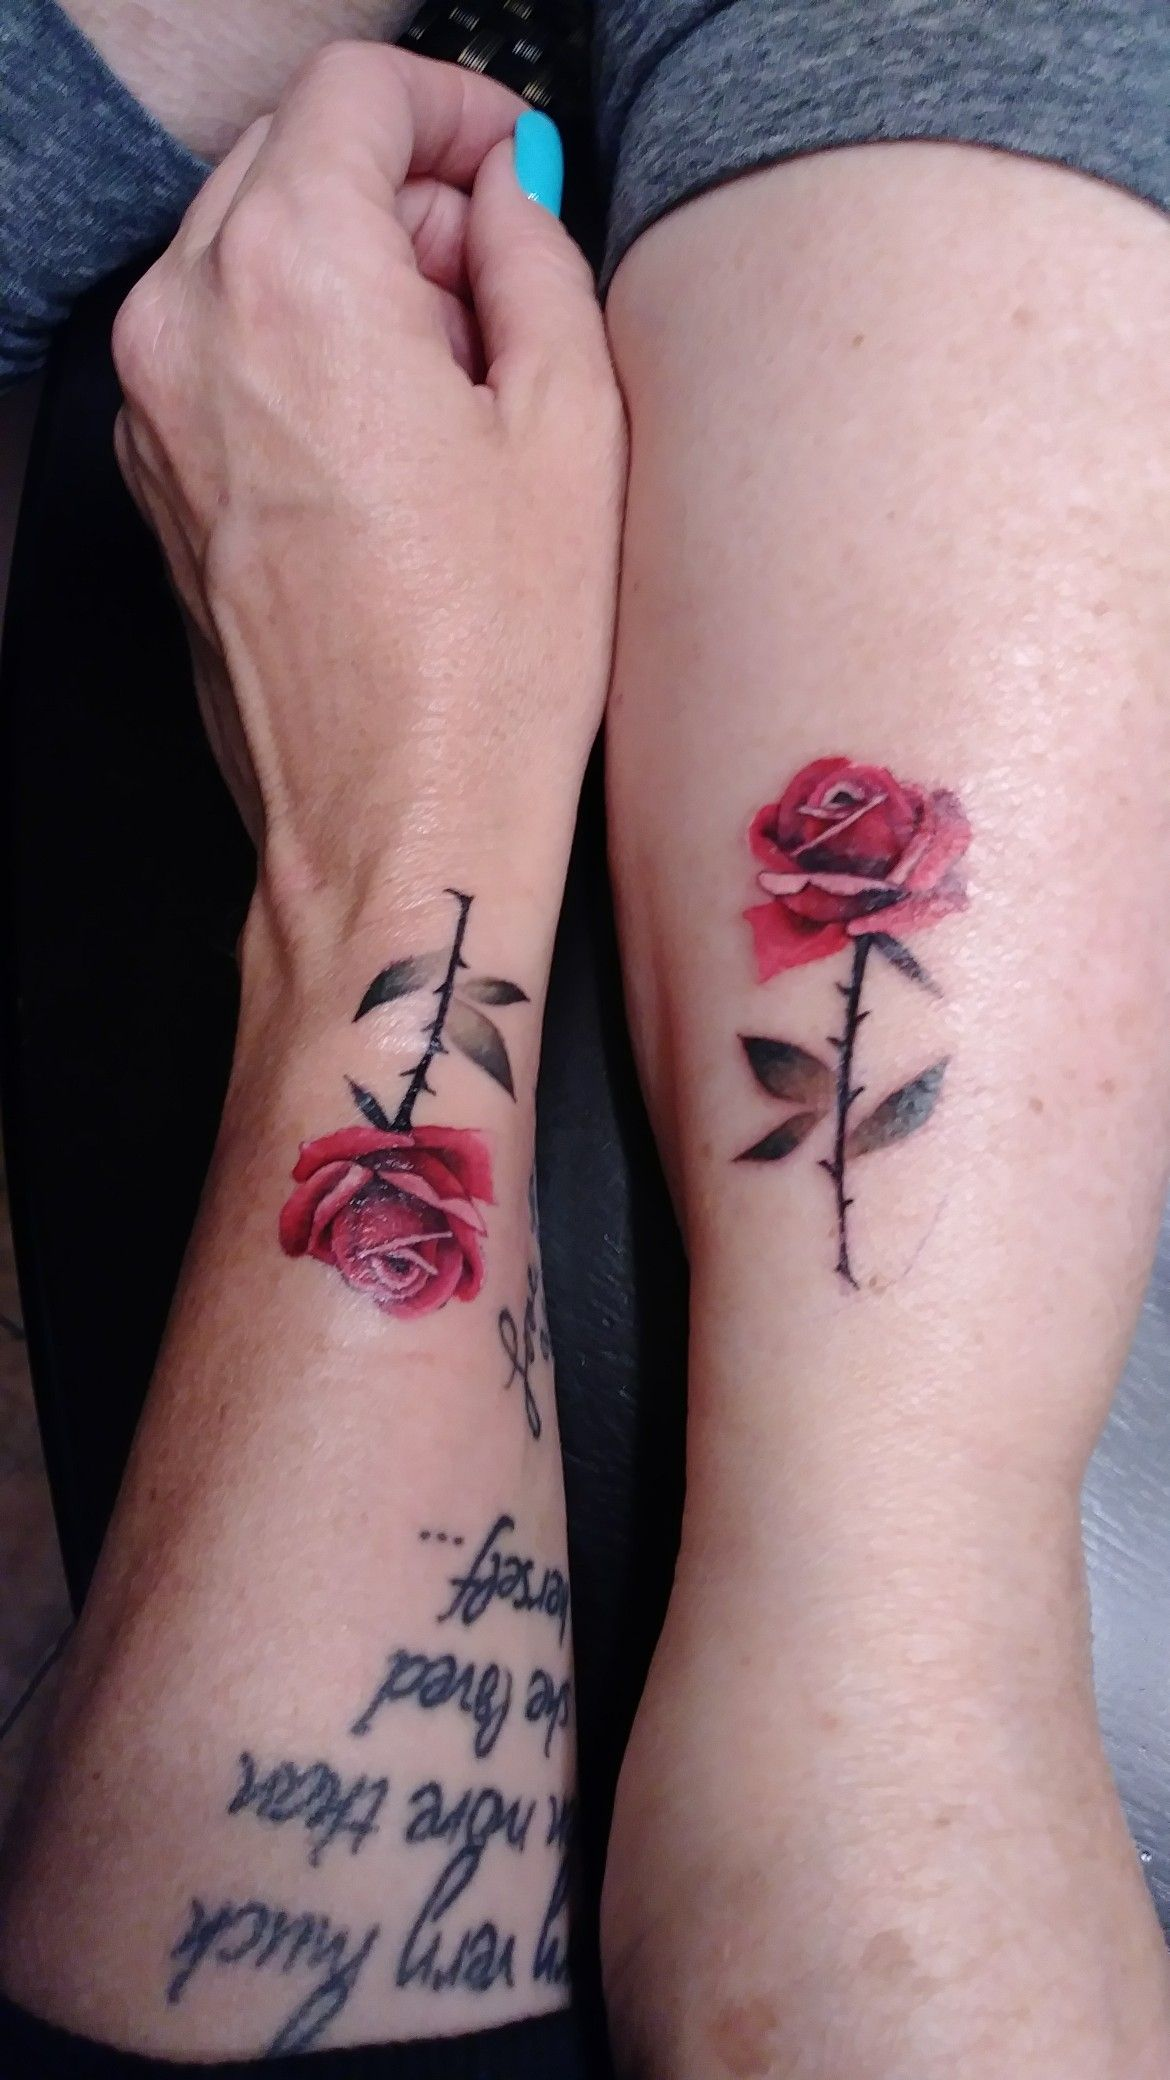 Small Tattoo Ideas For Mother And Daughter: Mother Daughter Tattoos, Matching Tattoos, Small Rose